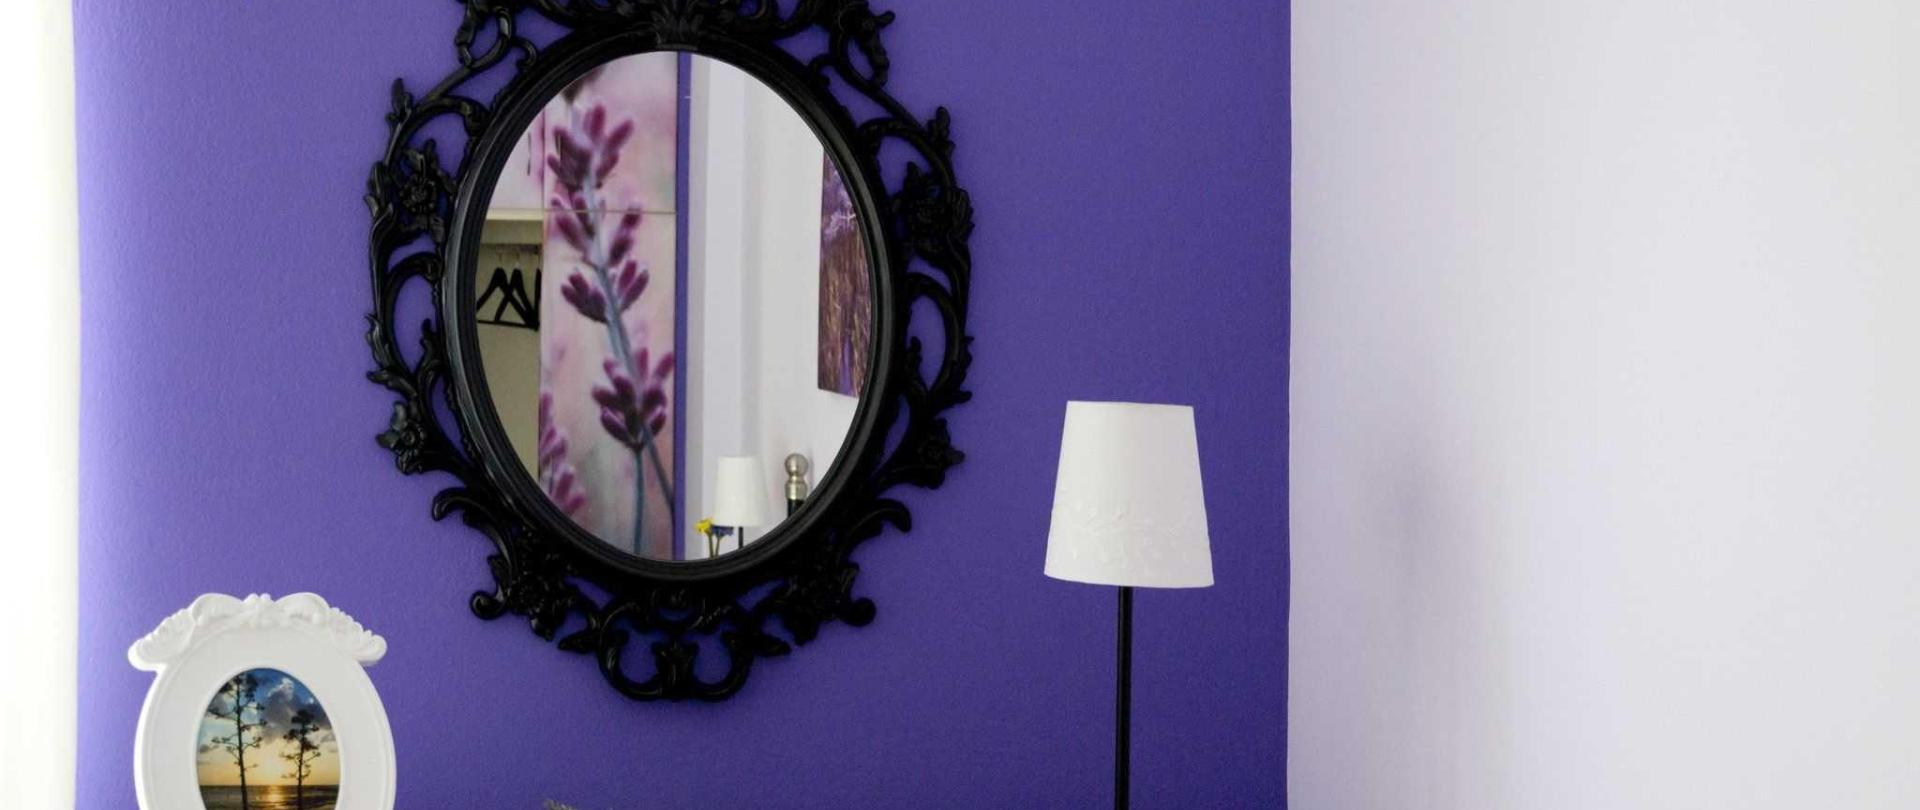 Lavender Flat, Bedroom Mirror